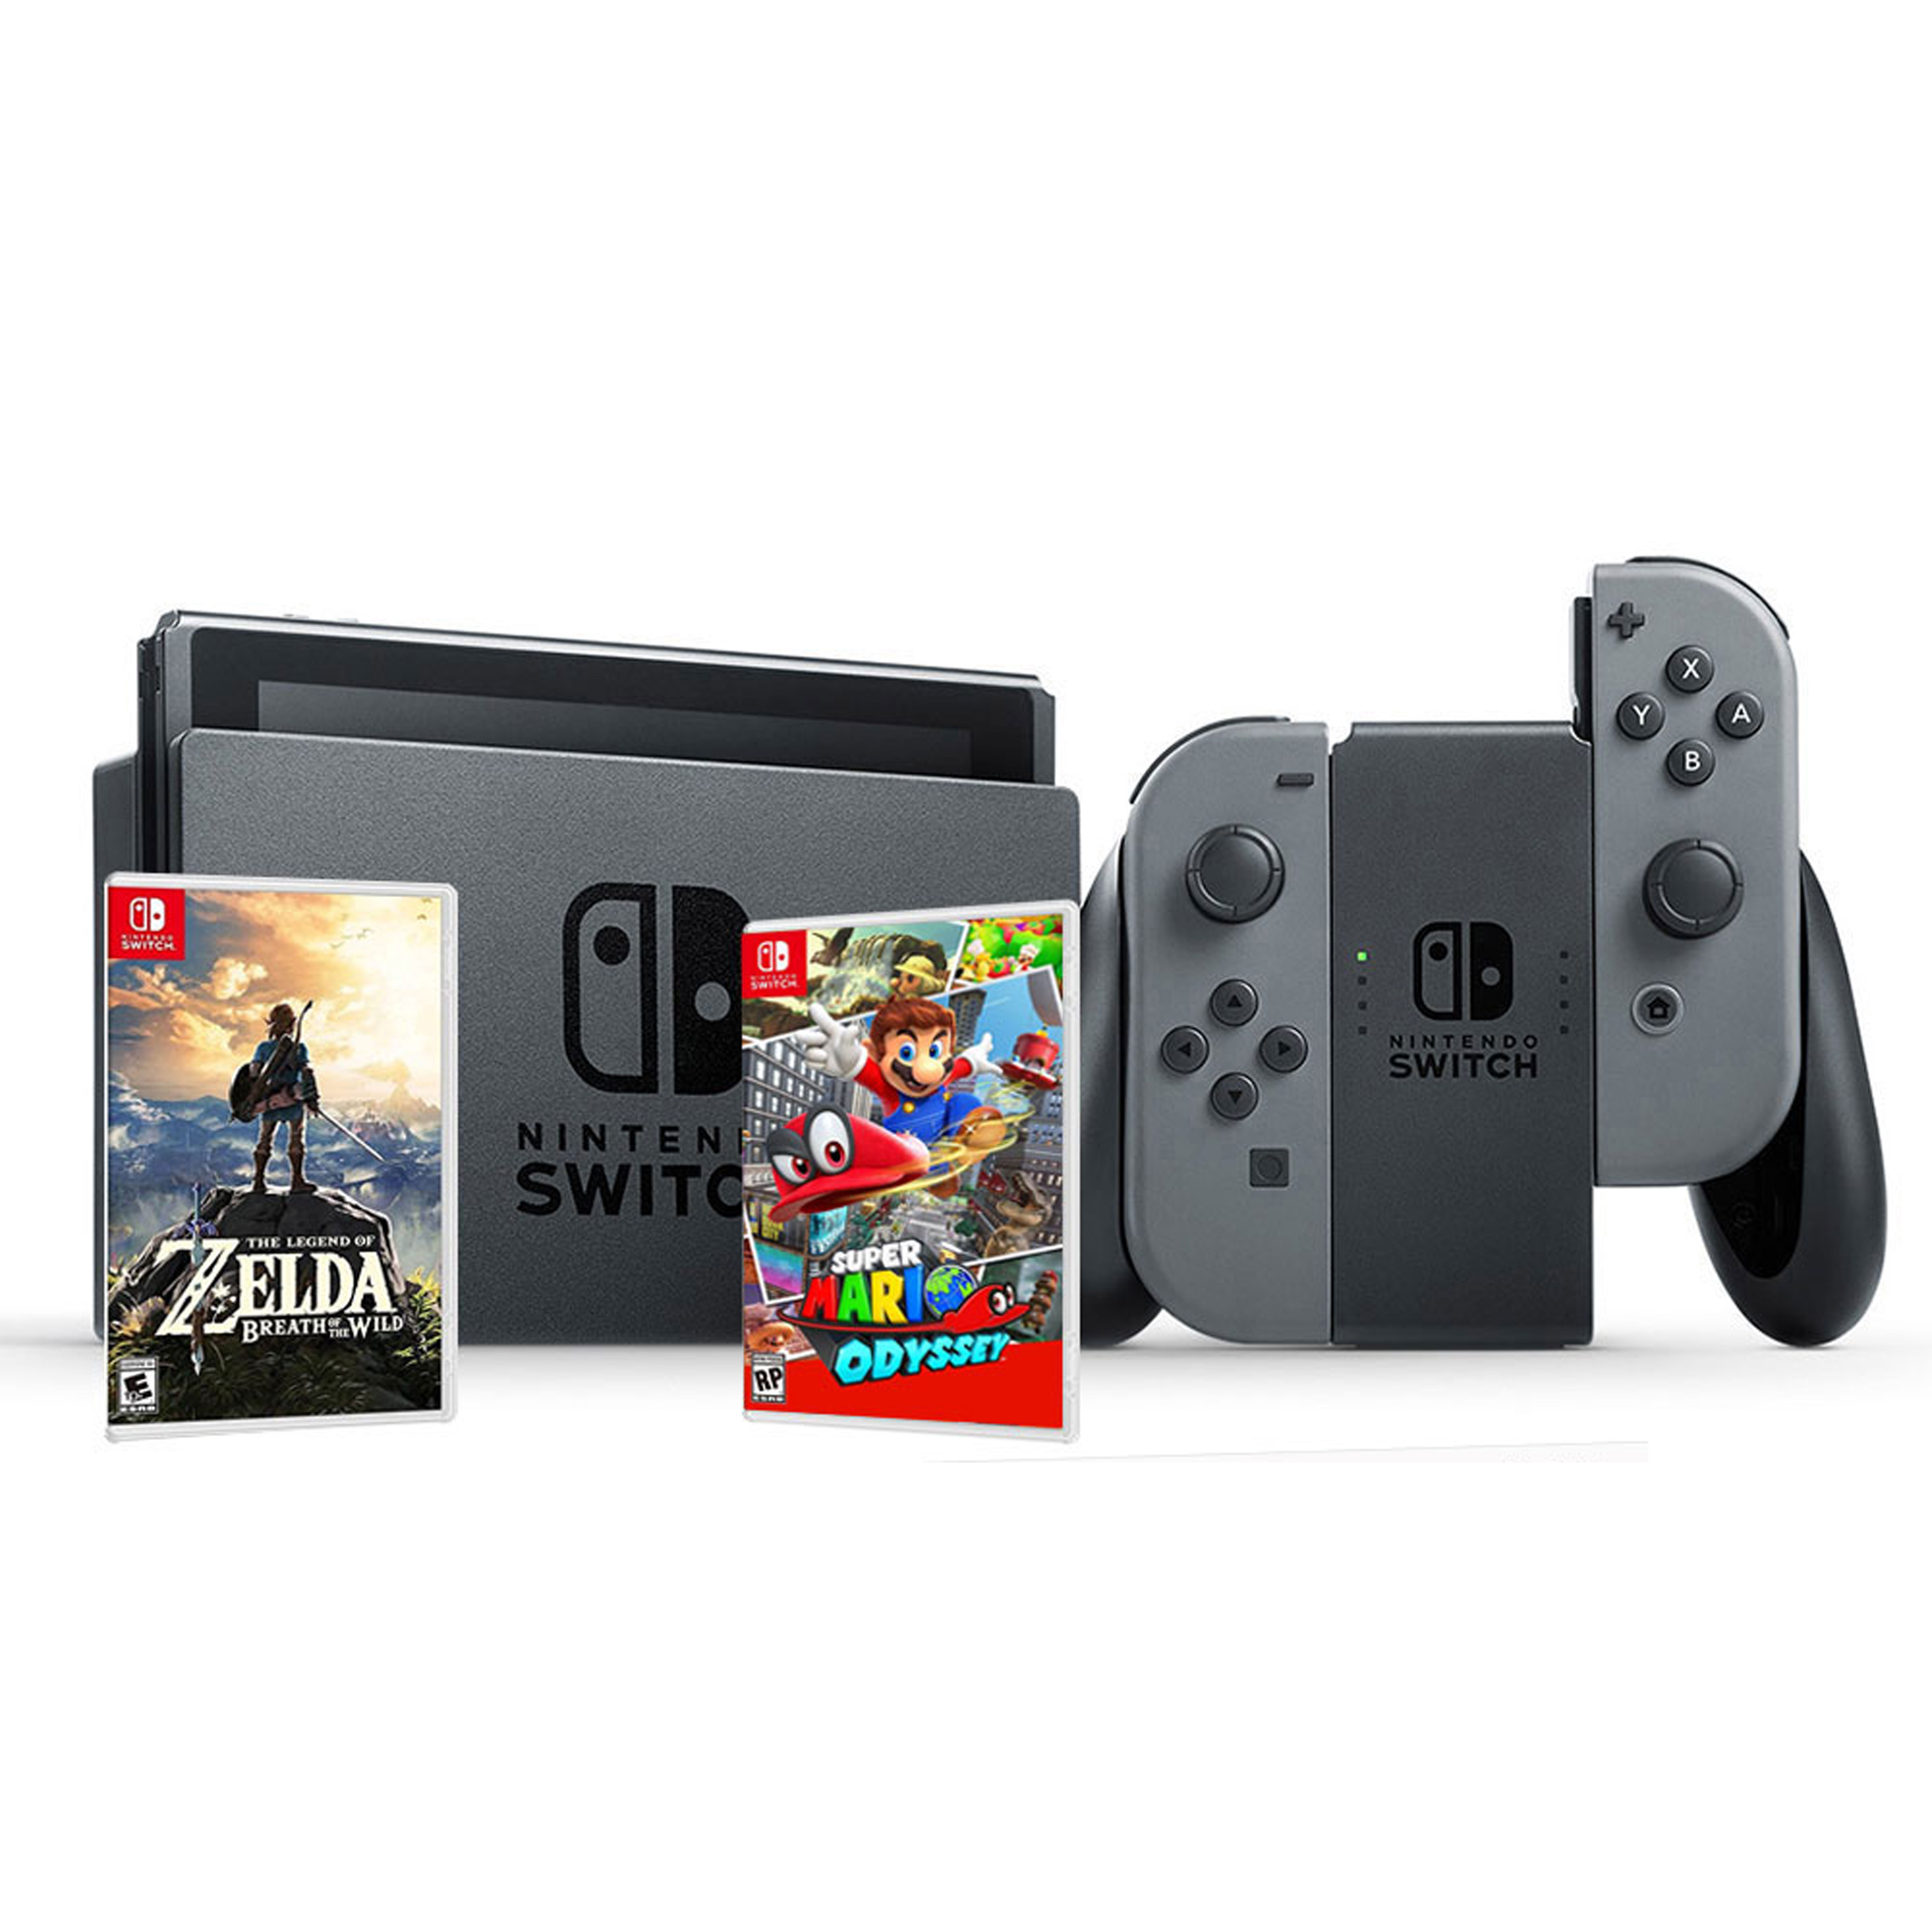 Nintendo Switch Bundle (Super Mario/Zelda)